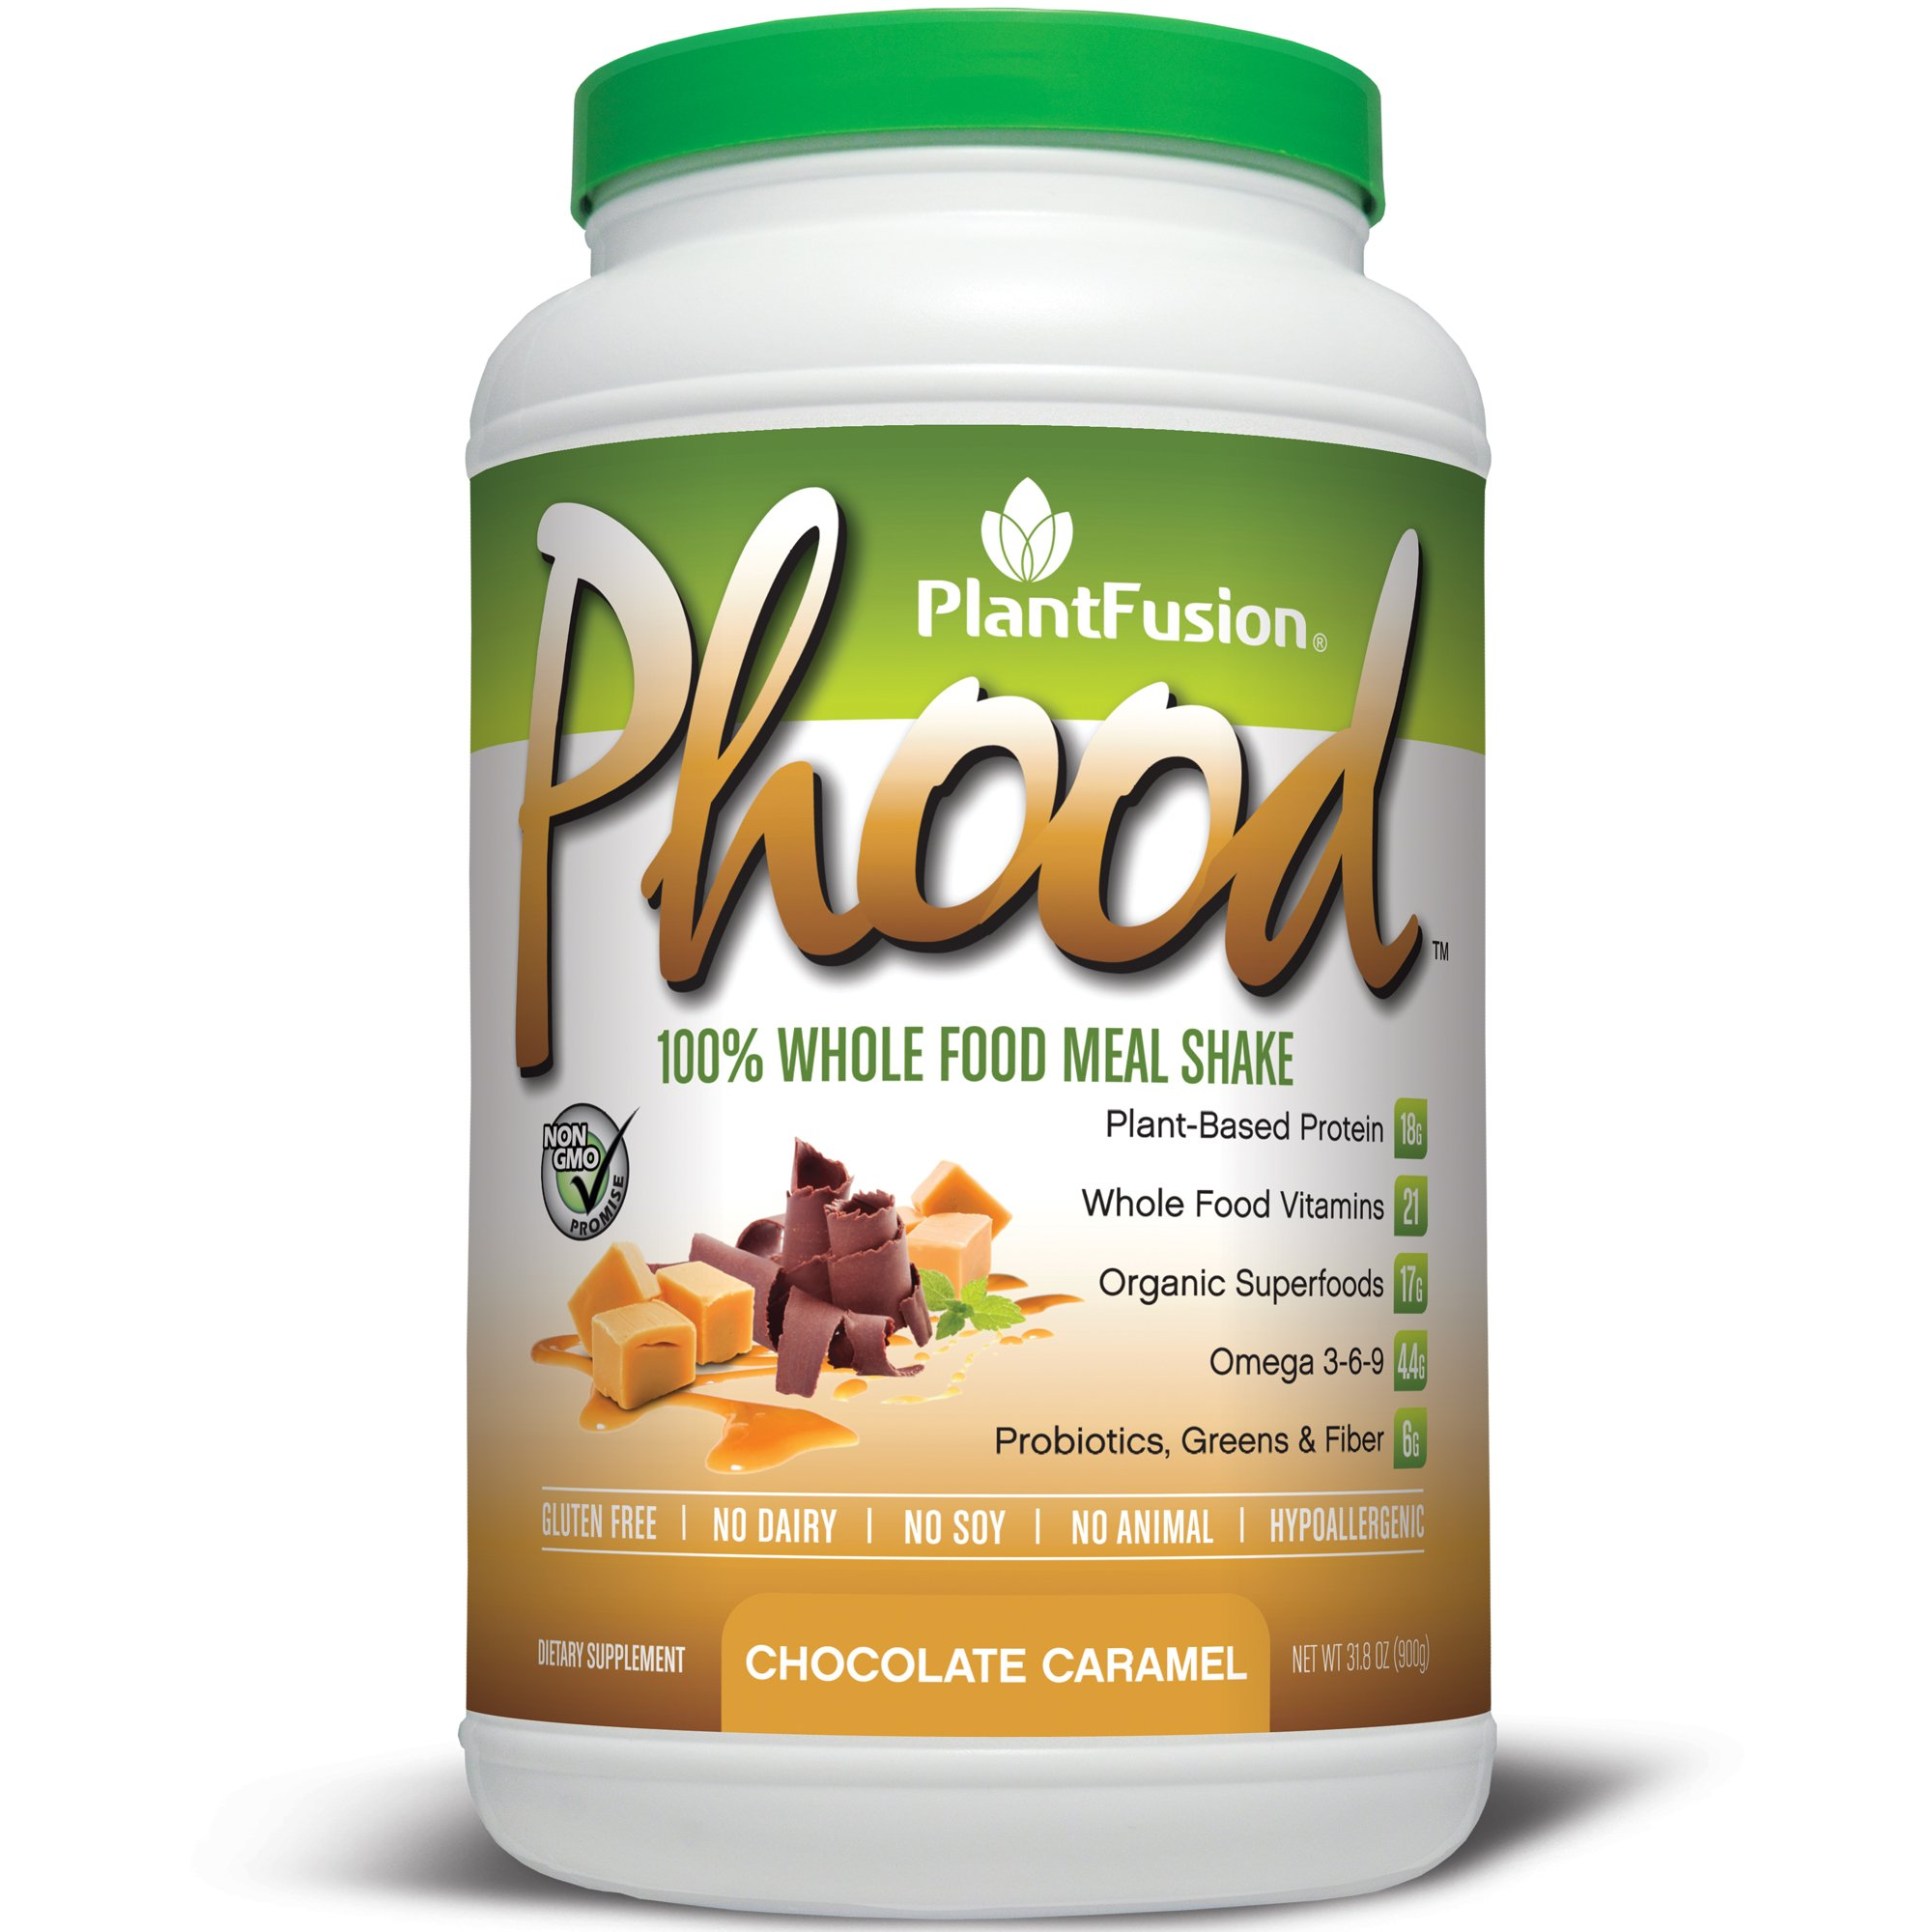 PlantFusion Phood Plant-Based Meal Replacement Protein Powder, Chocolate Caramel, 31.8 oz Tub, 20 Servings, 1 Count, Non-GMO, Gluten Free, Hypoallergenic